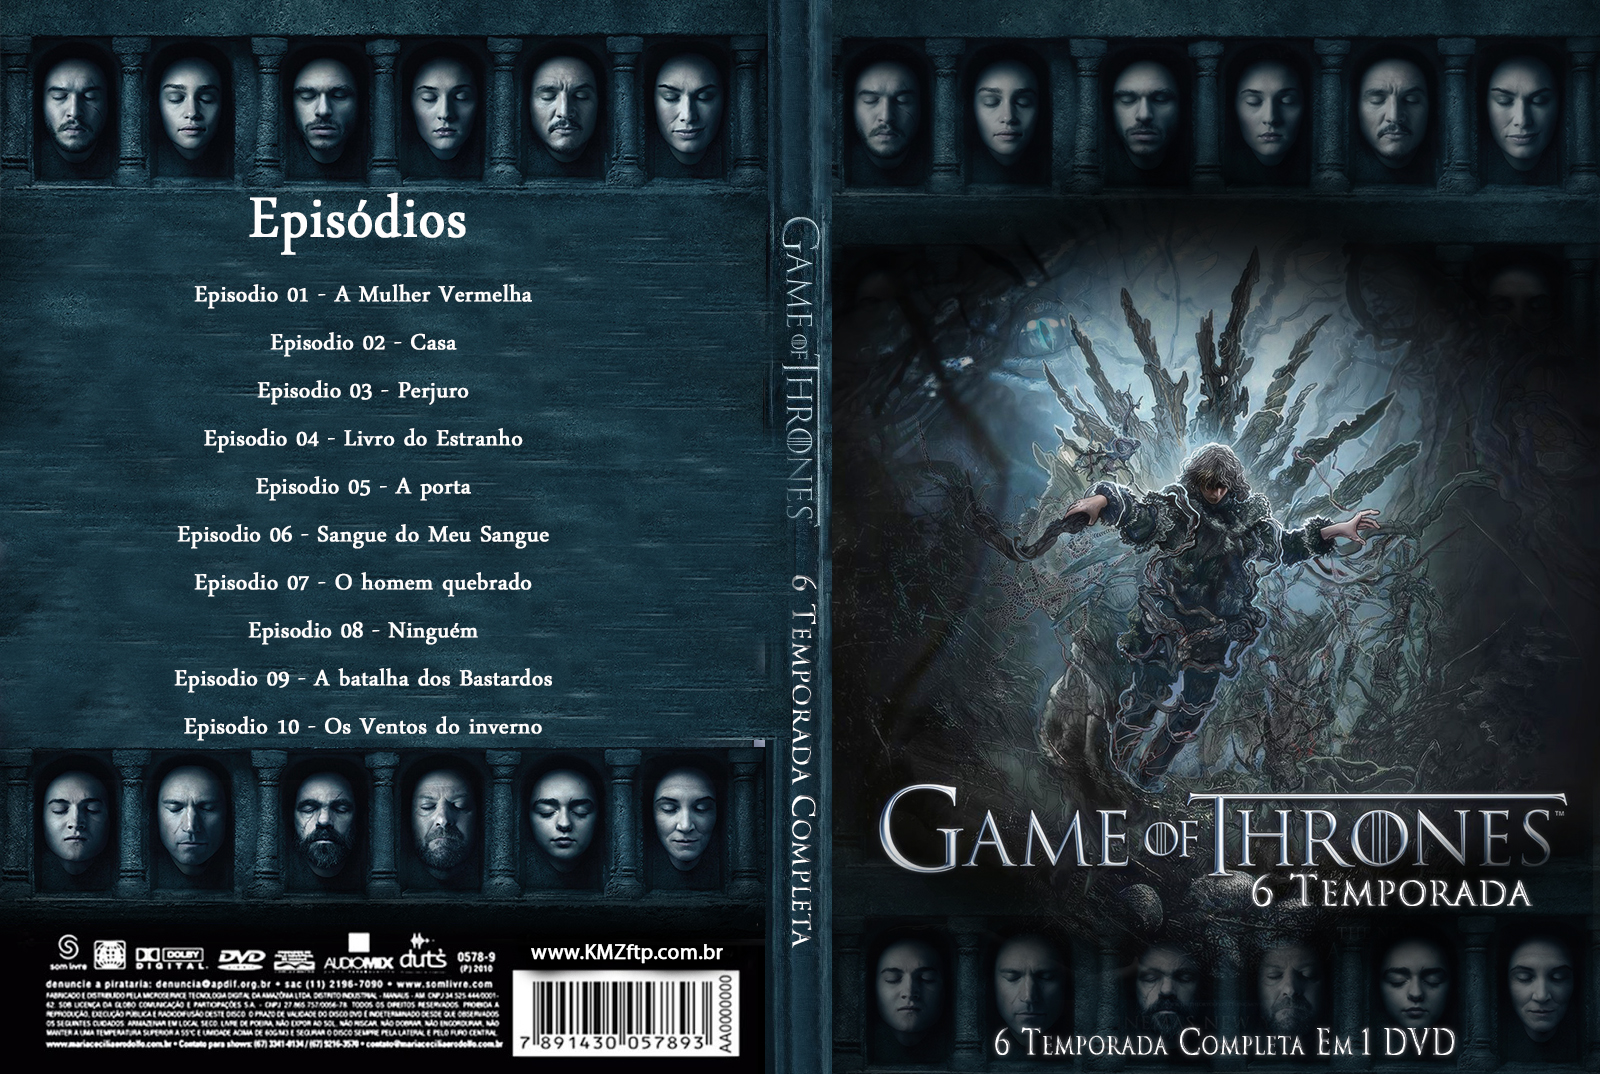 Game Of Thrones 6º Temporada Completa DVD-R Game 2BOf 2BThrones 2B6 2BTemporada 2Bcapa 2B2